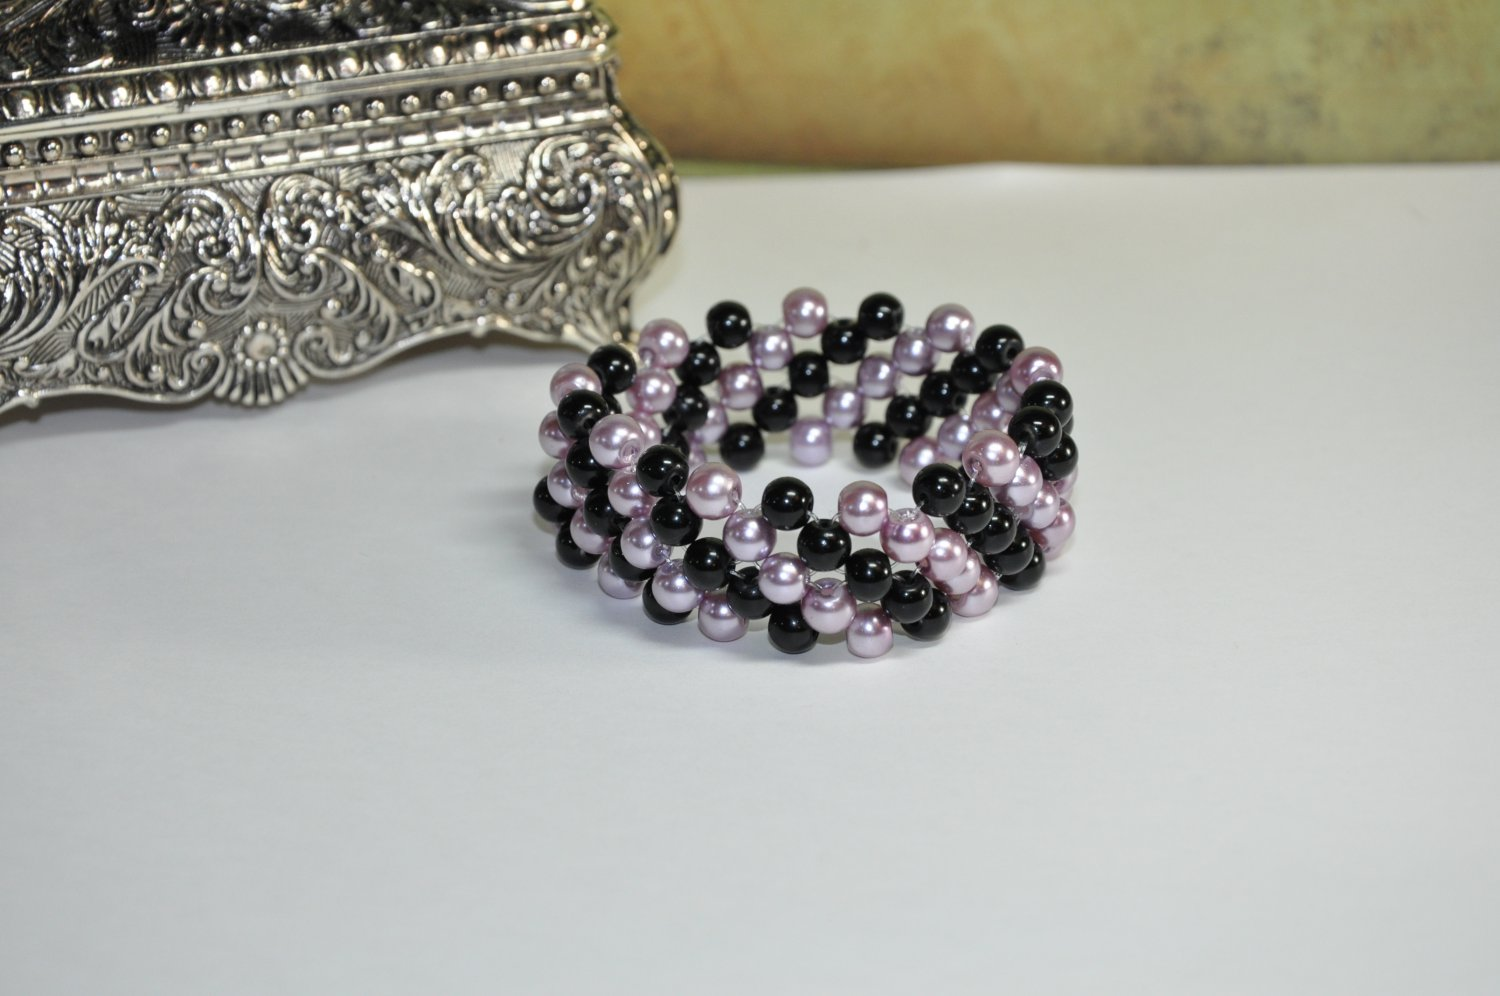 Handcrafted Bracelet by Studio Artist Black Purple Glass Pearls Stretchy Beaded Cuff